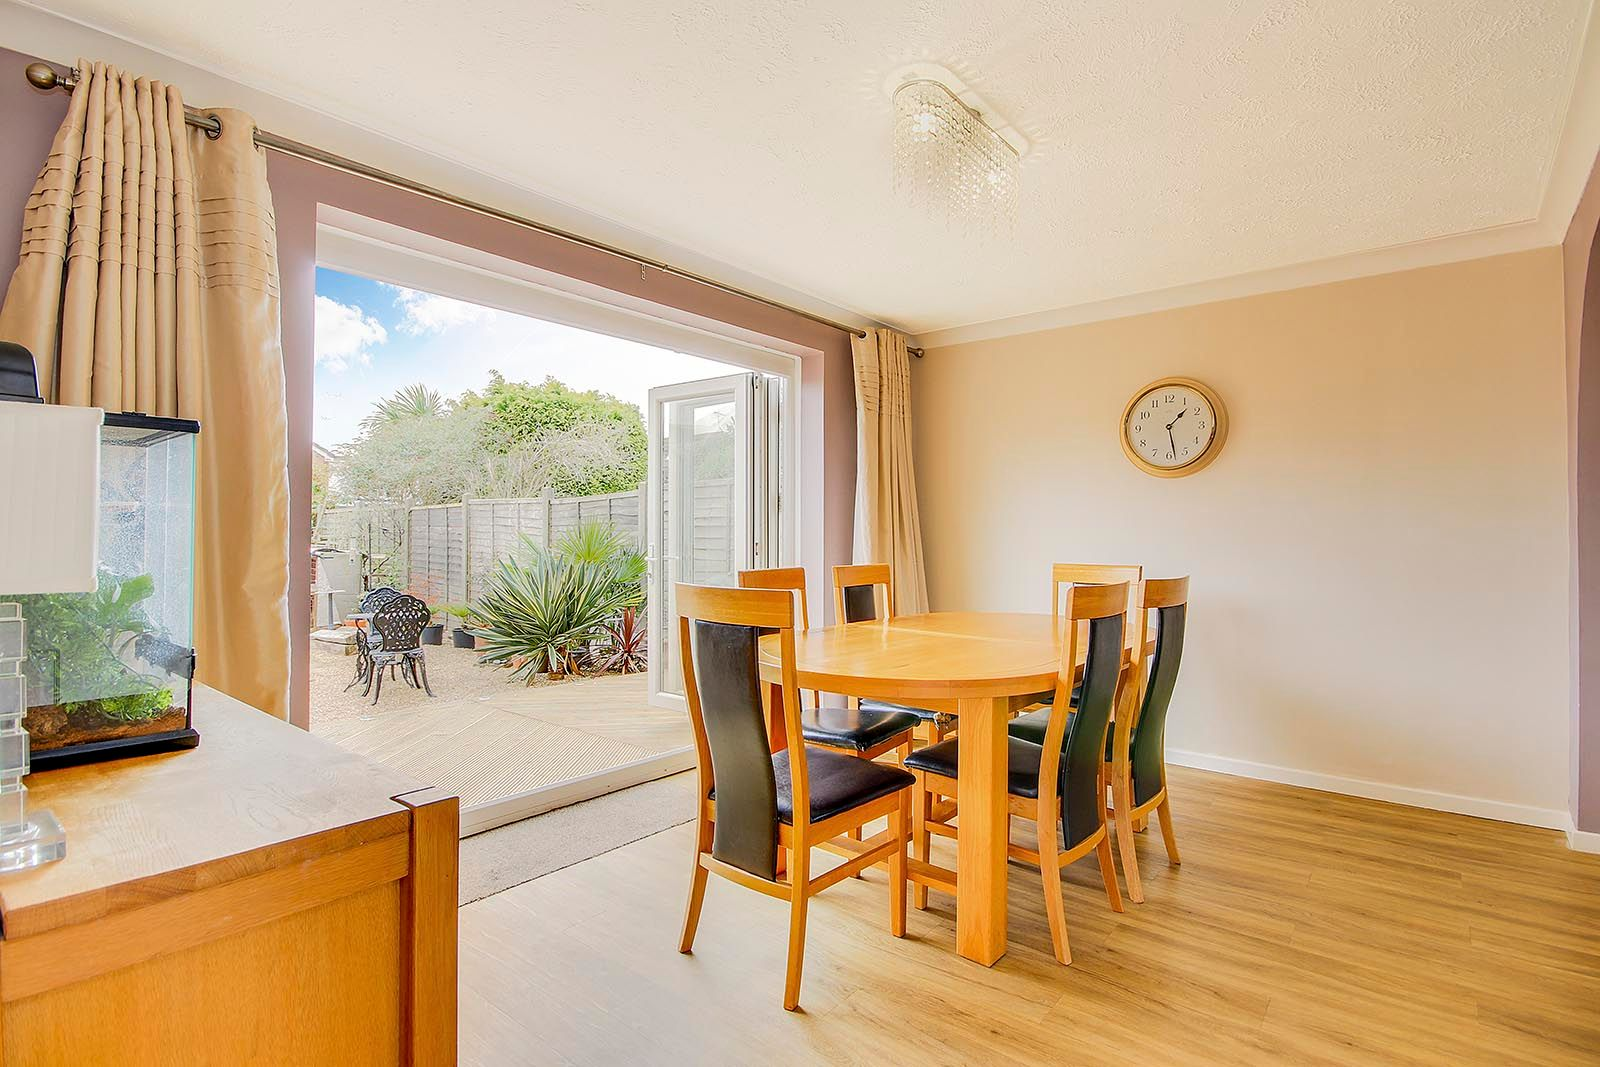 3 bed house for sale in Woodlands Close (COMP AUG 19) 14